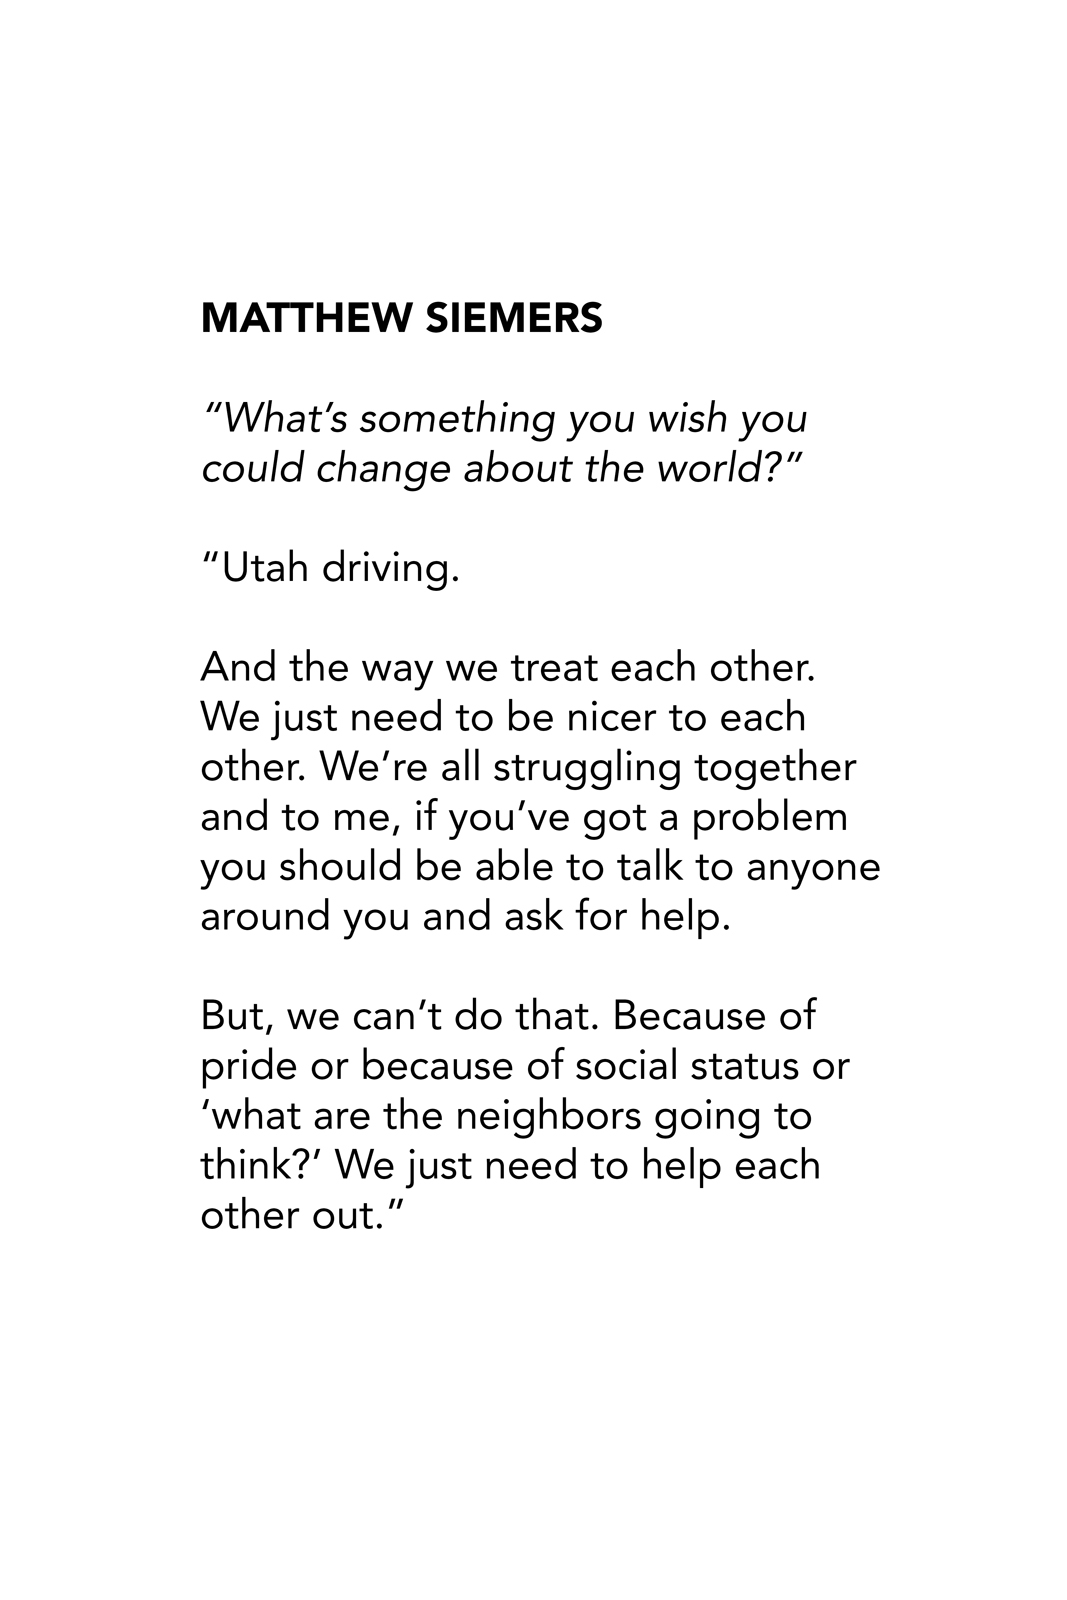 Matthew Siemers Quote.jpg